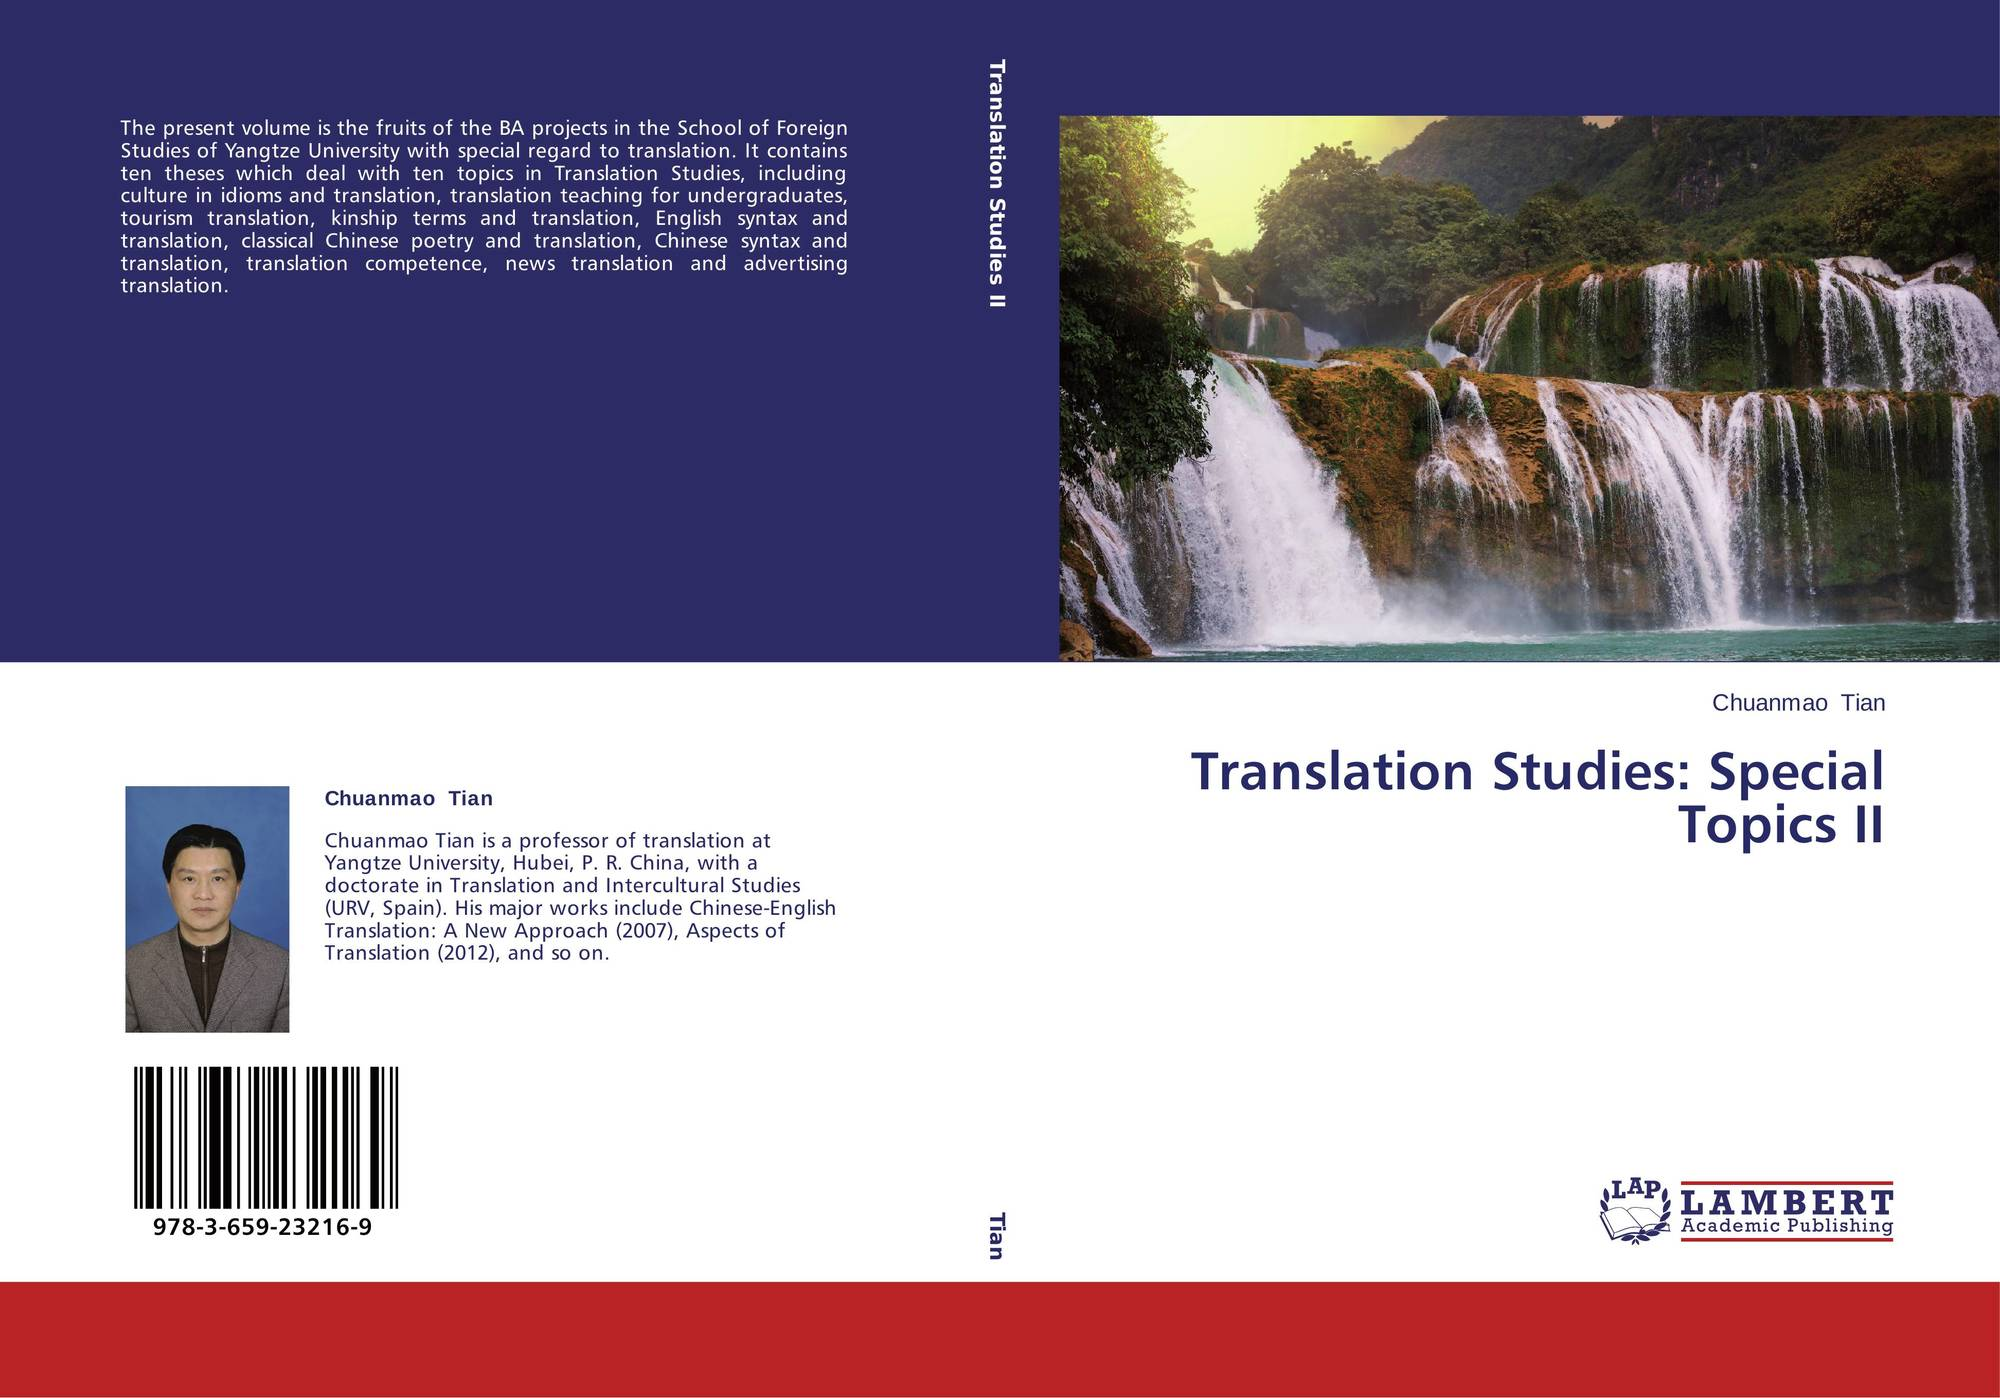 Phd thesis translation studies